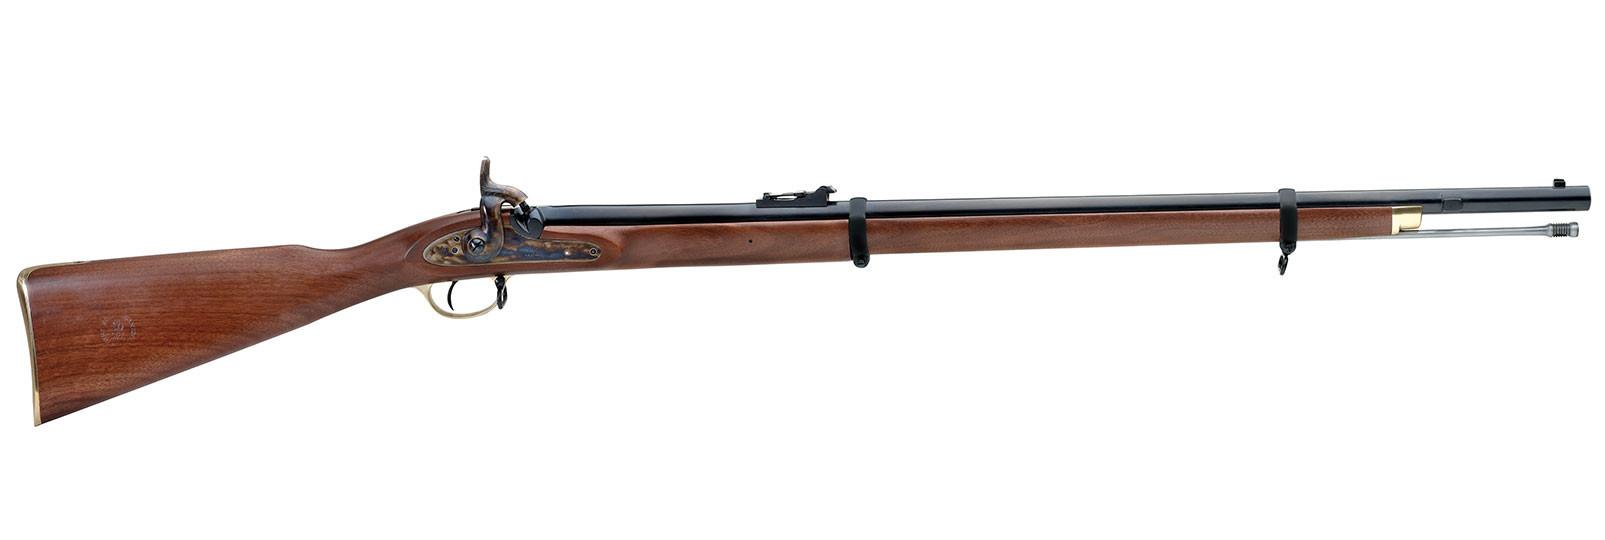 Enfield 2 band P1858 Rifle